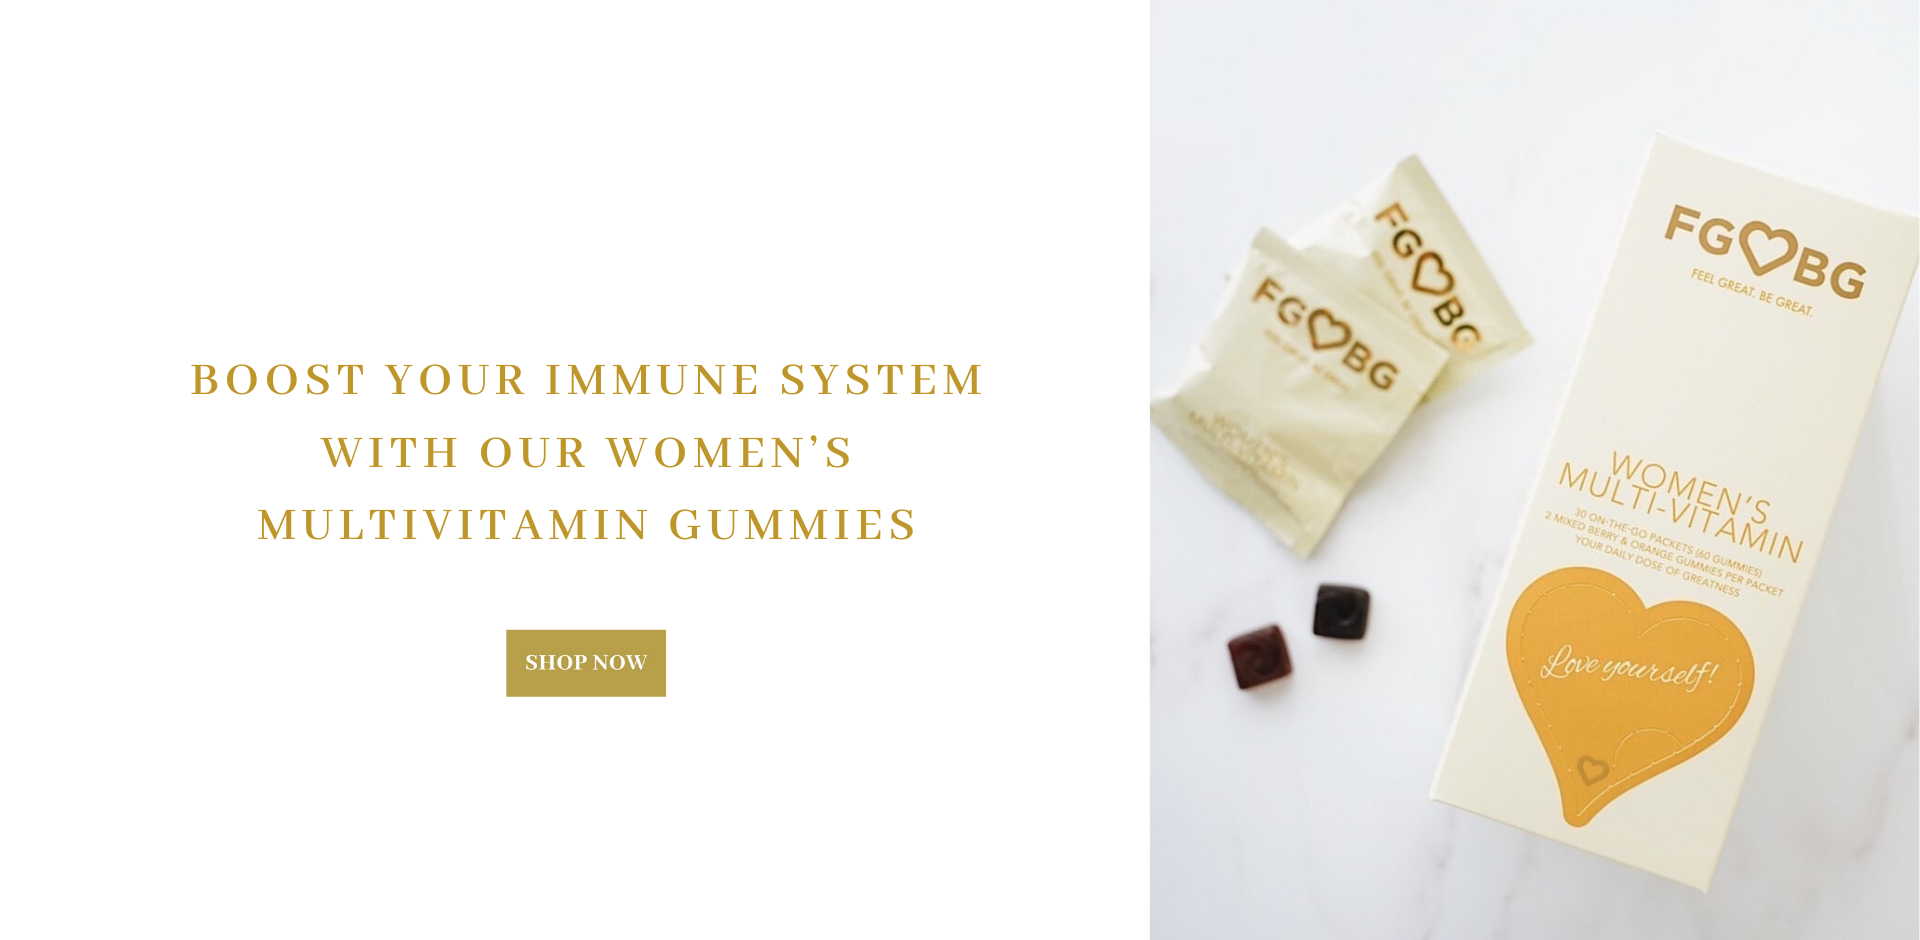 Boost your immune system with our FGBG  Women's Multi Vitamin Gummies.